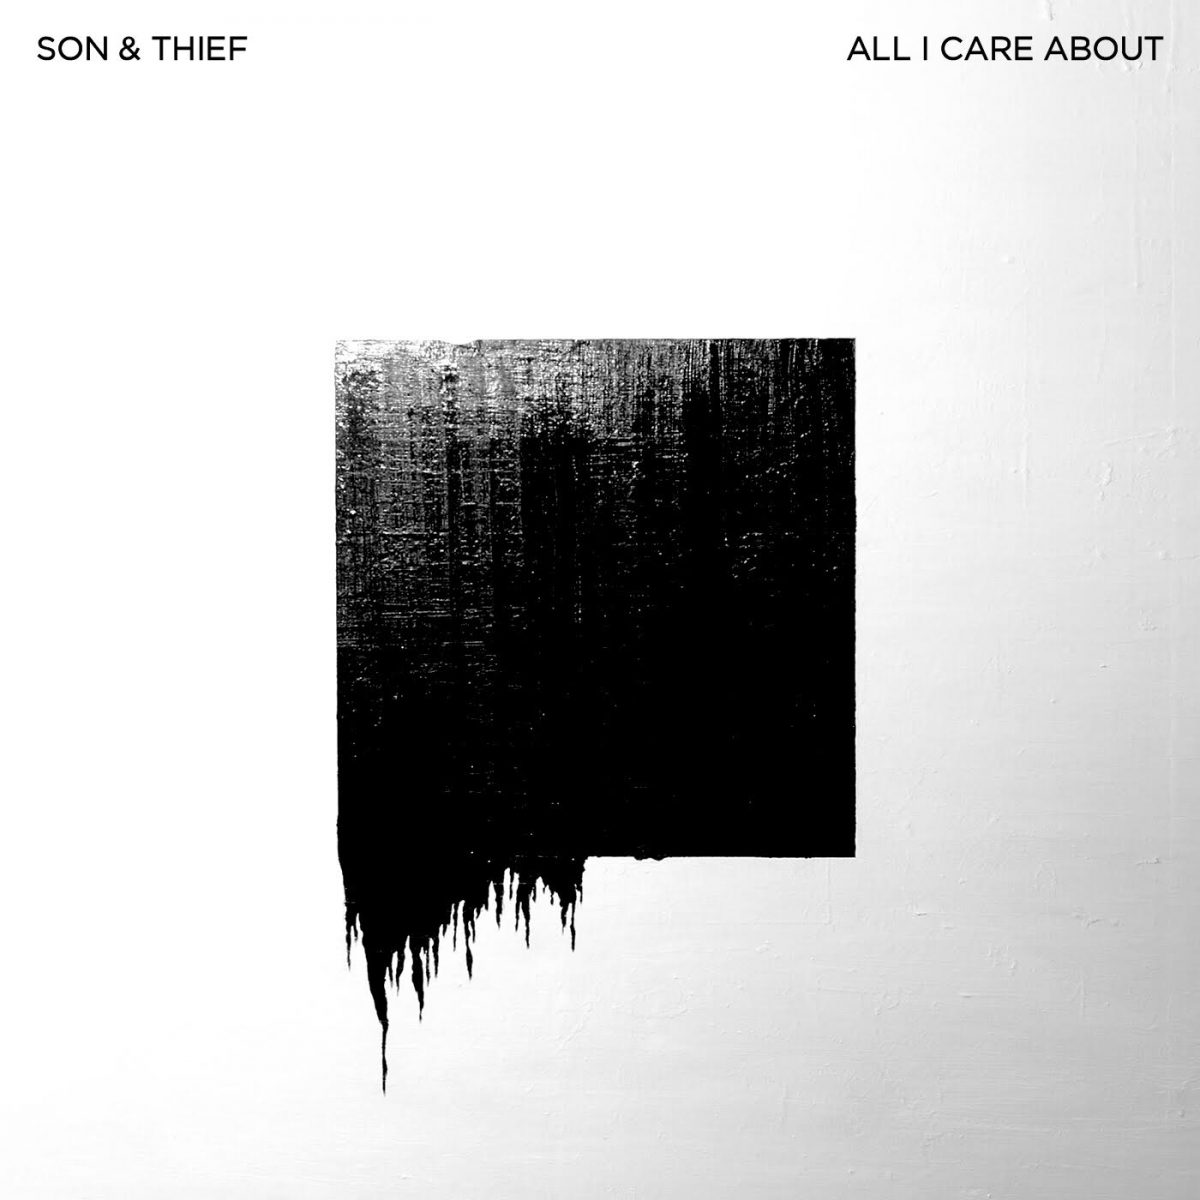 Son & Thief – All I Care About